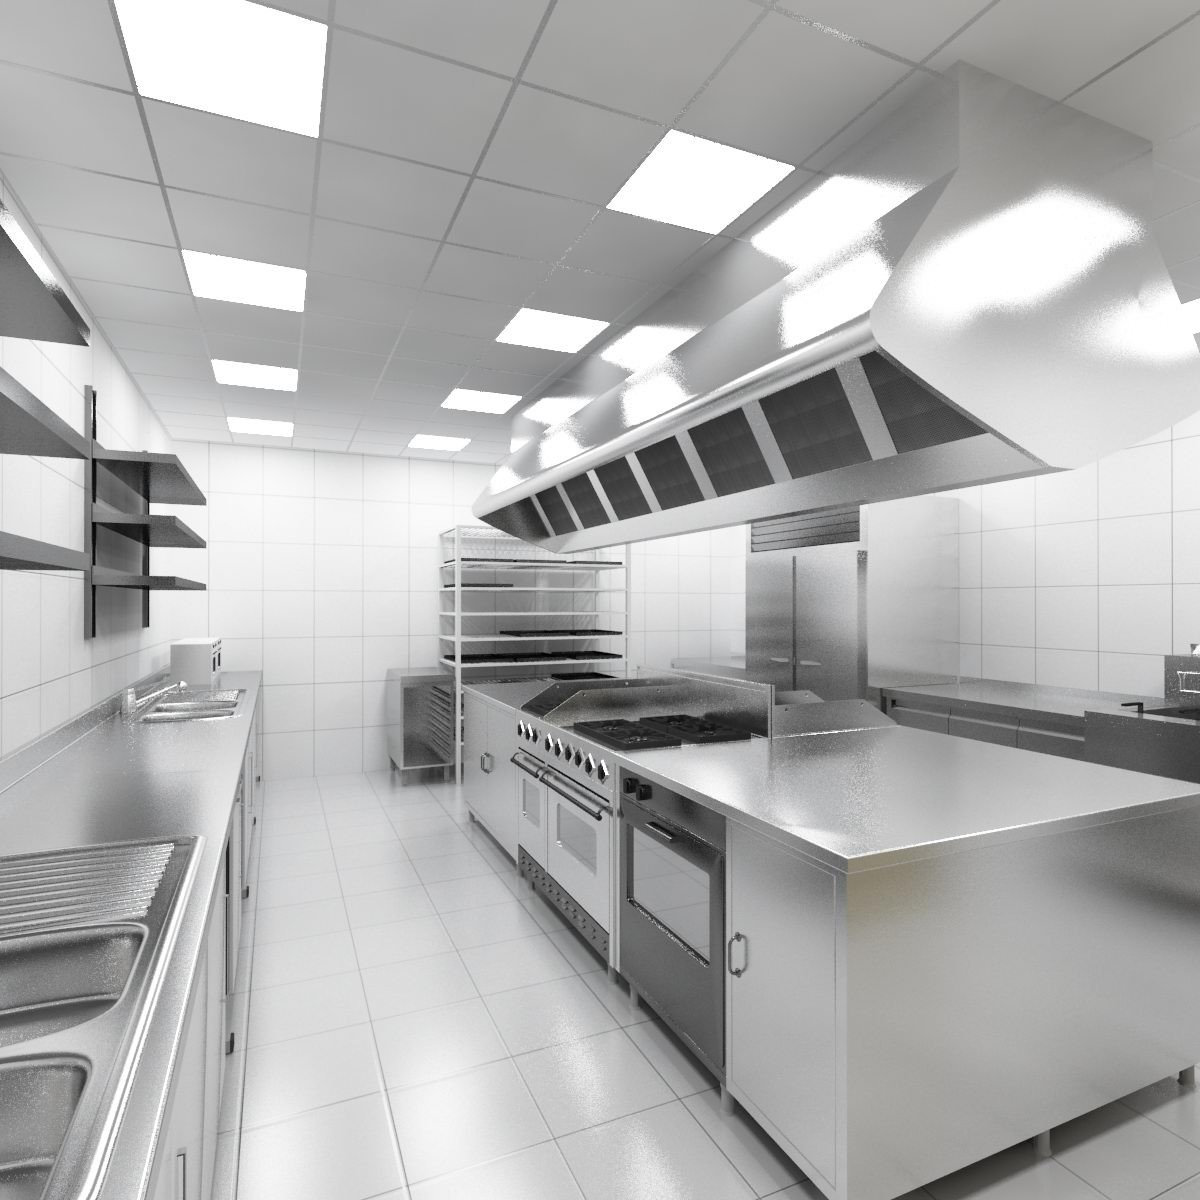 3d industrial kitchen model for Decor 3d model